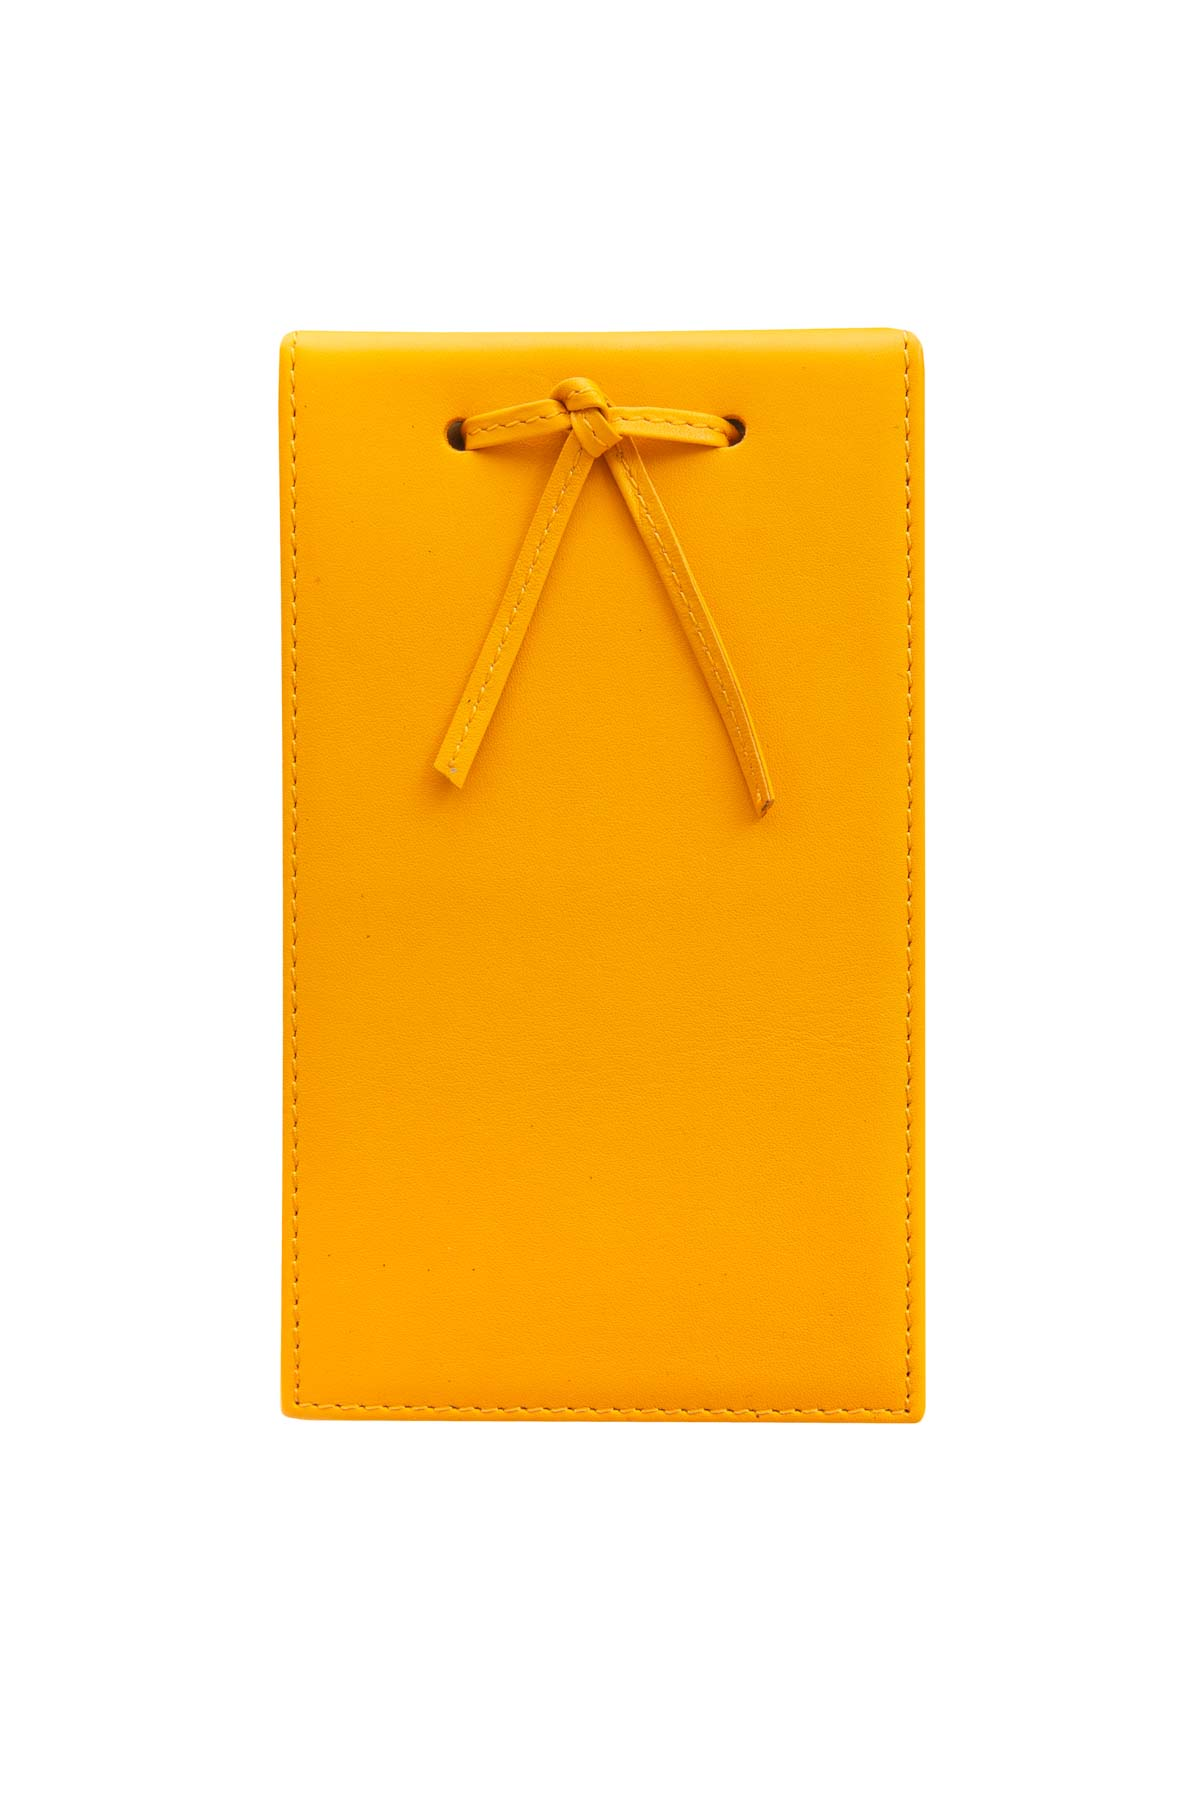 Telephone Pad - Yellow